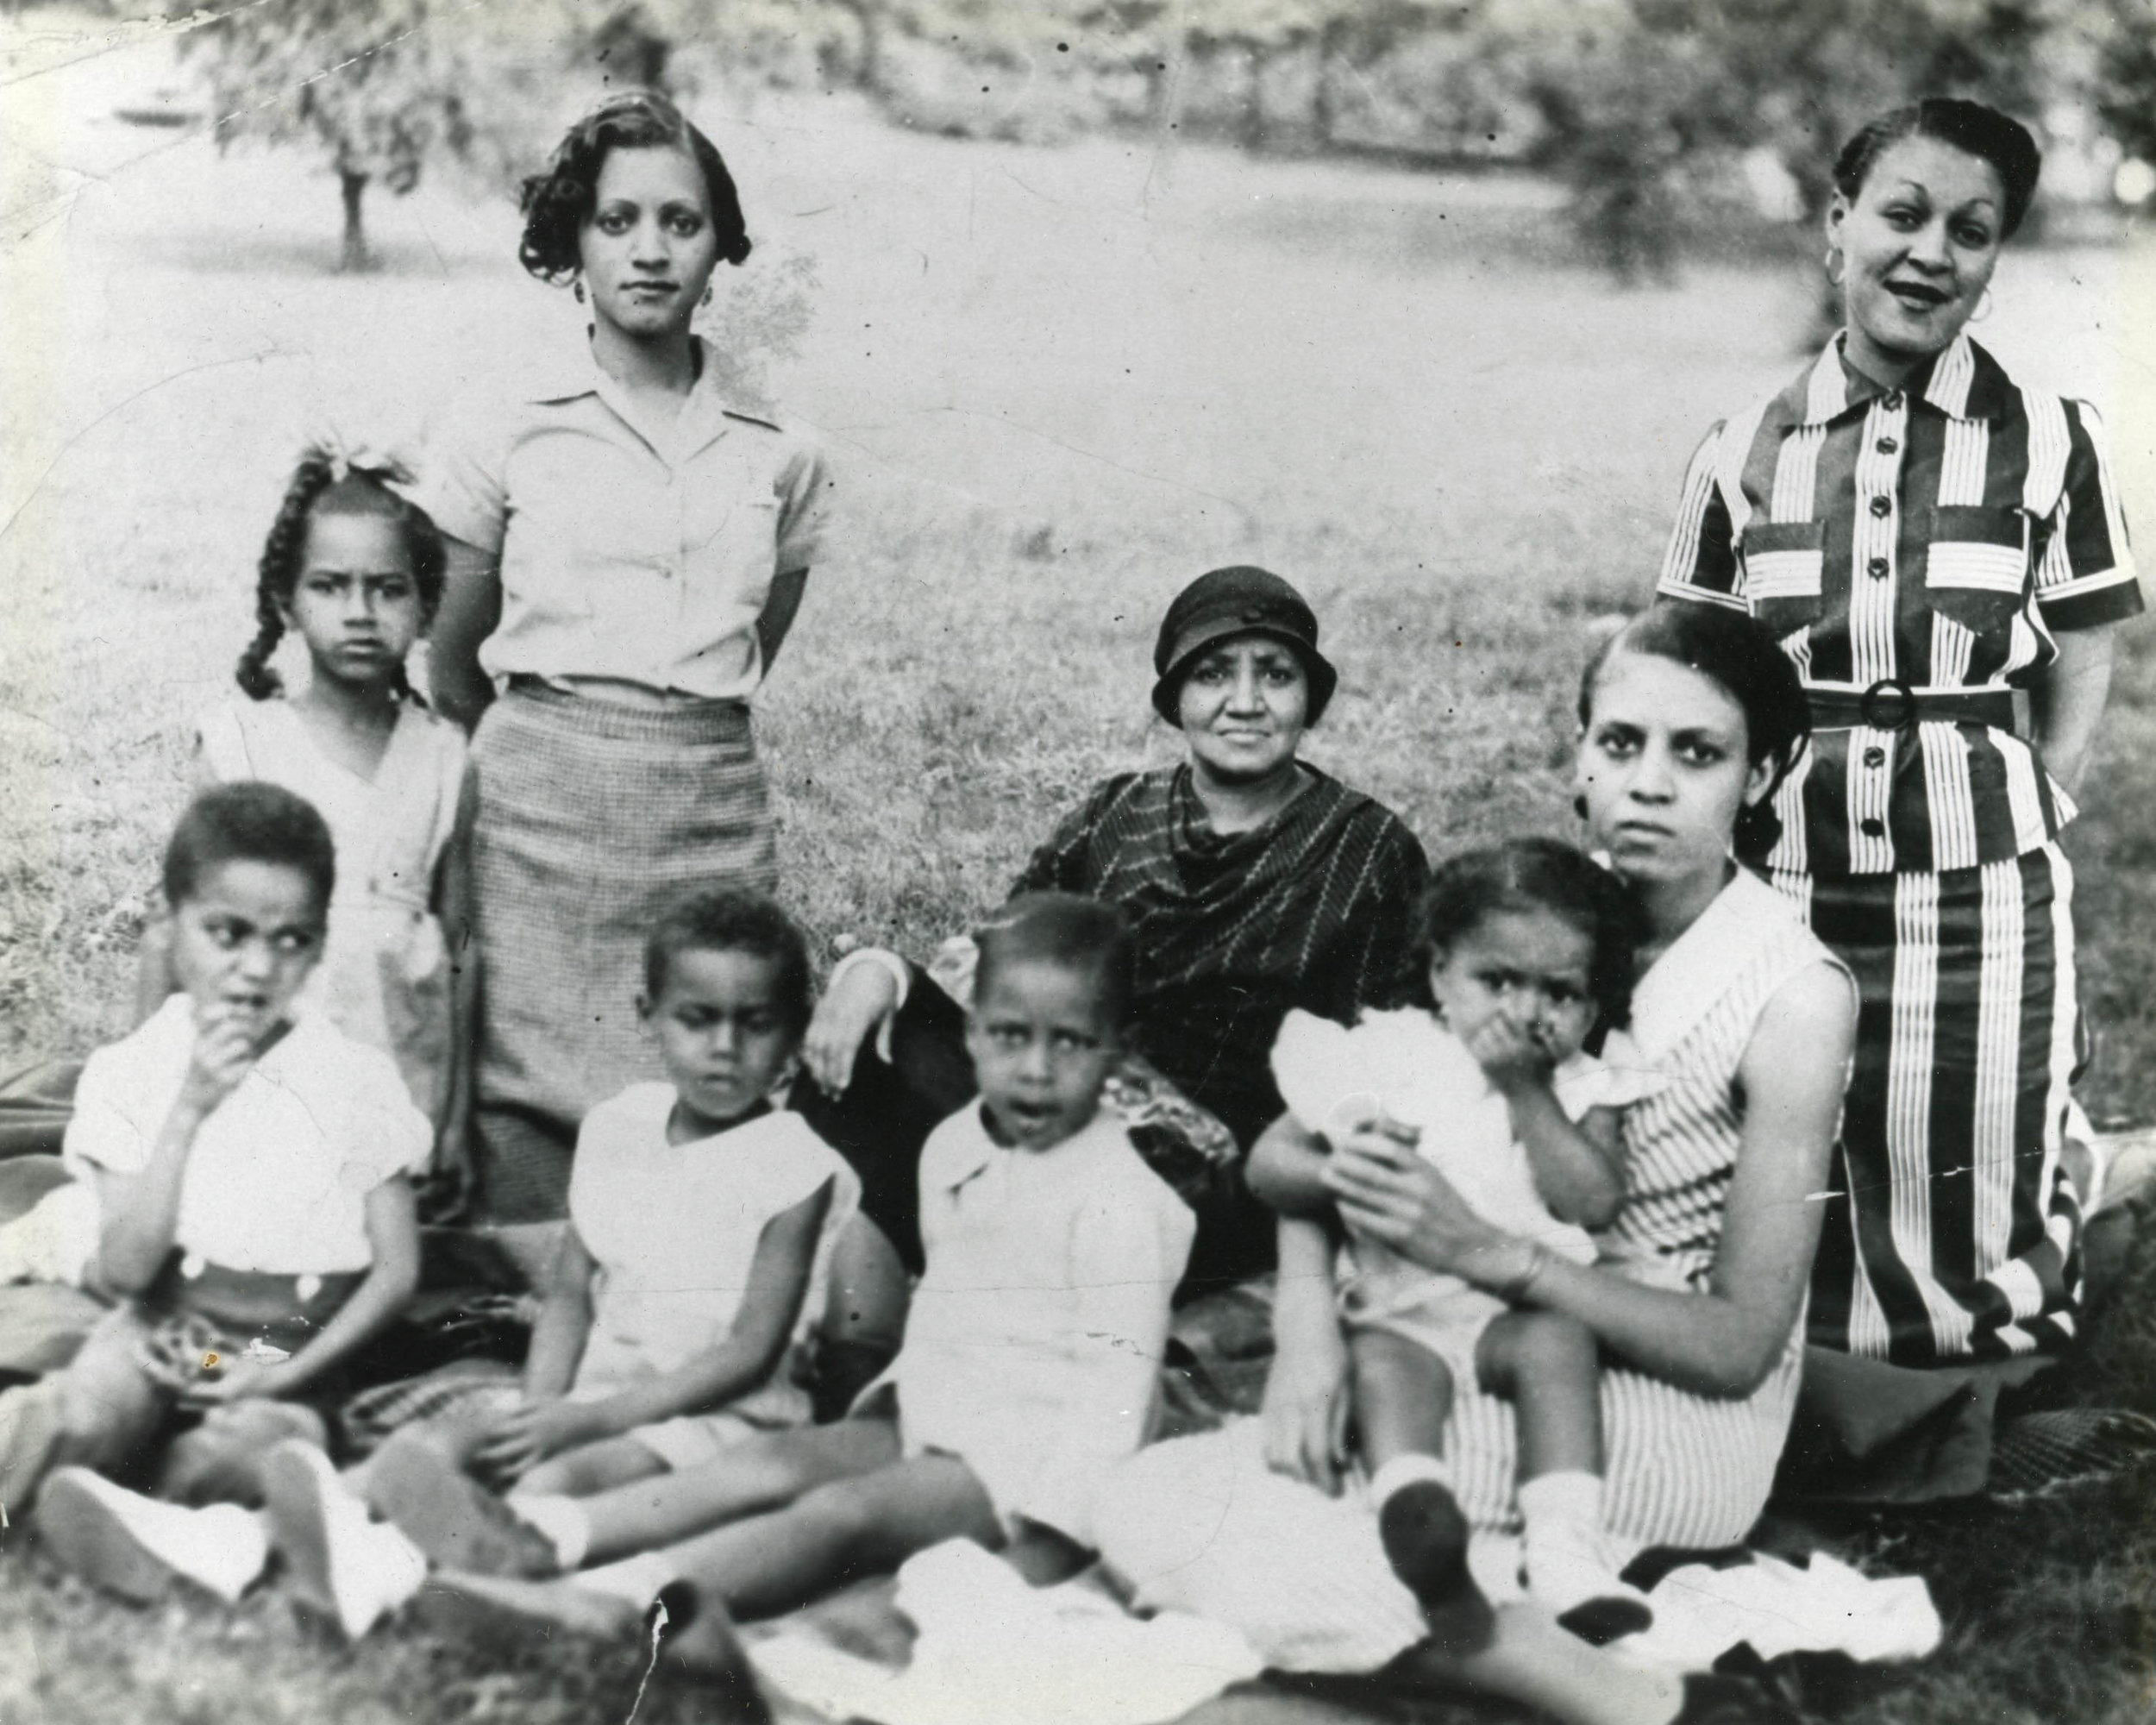 Louise Powe's family, including her mother (front row, right), aunts, grandmother, and older siblings, at a picnic in the early 1930s. Courtesy of Louise Powe.